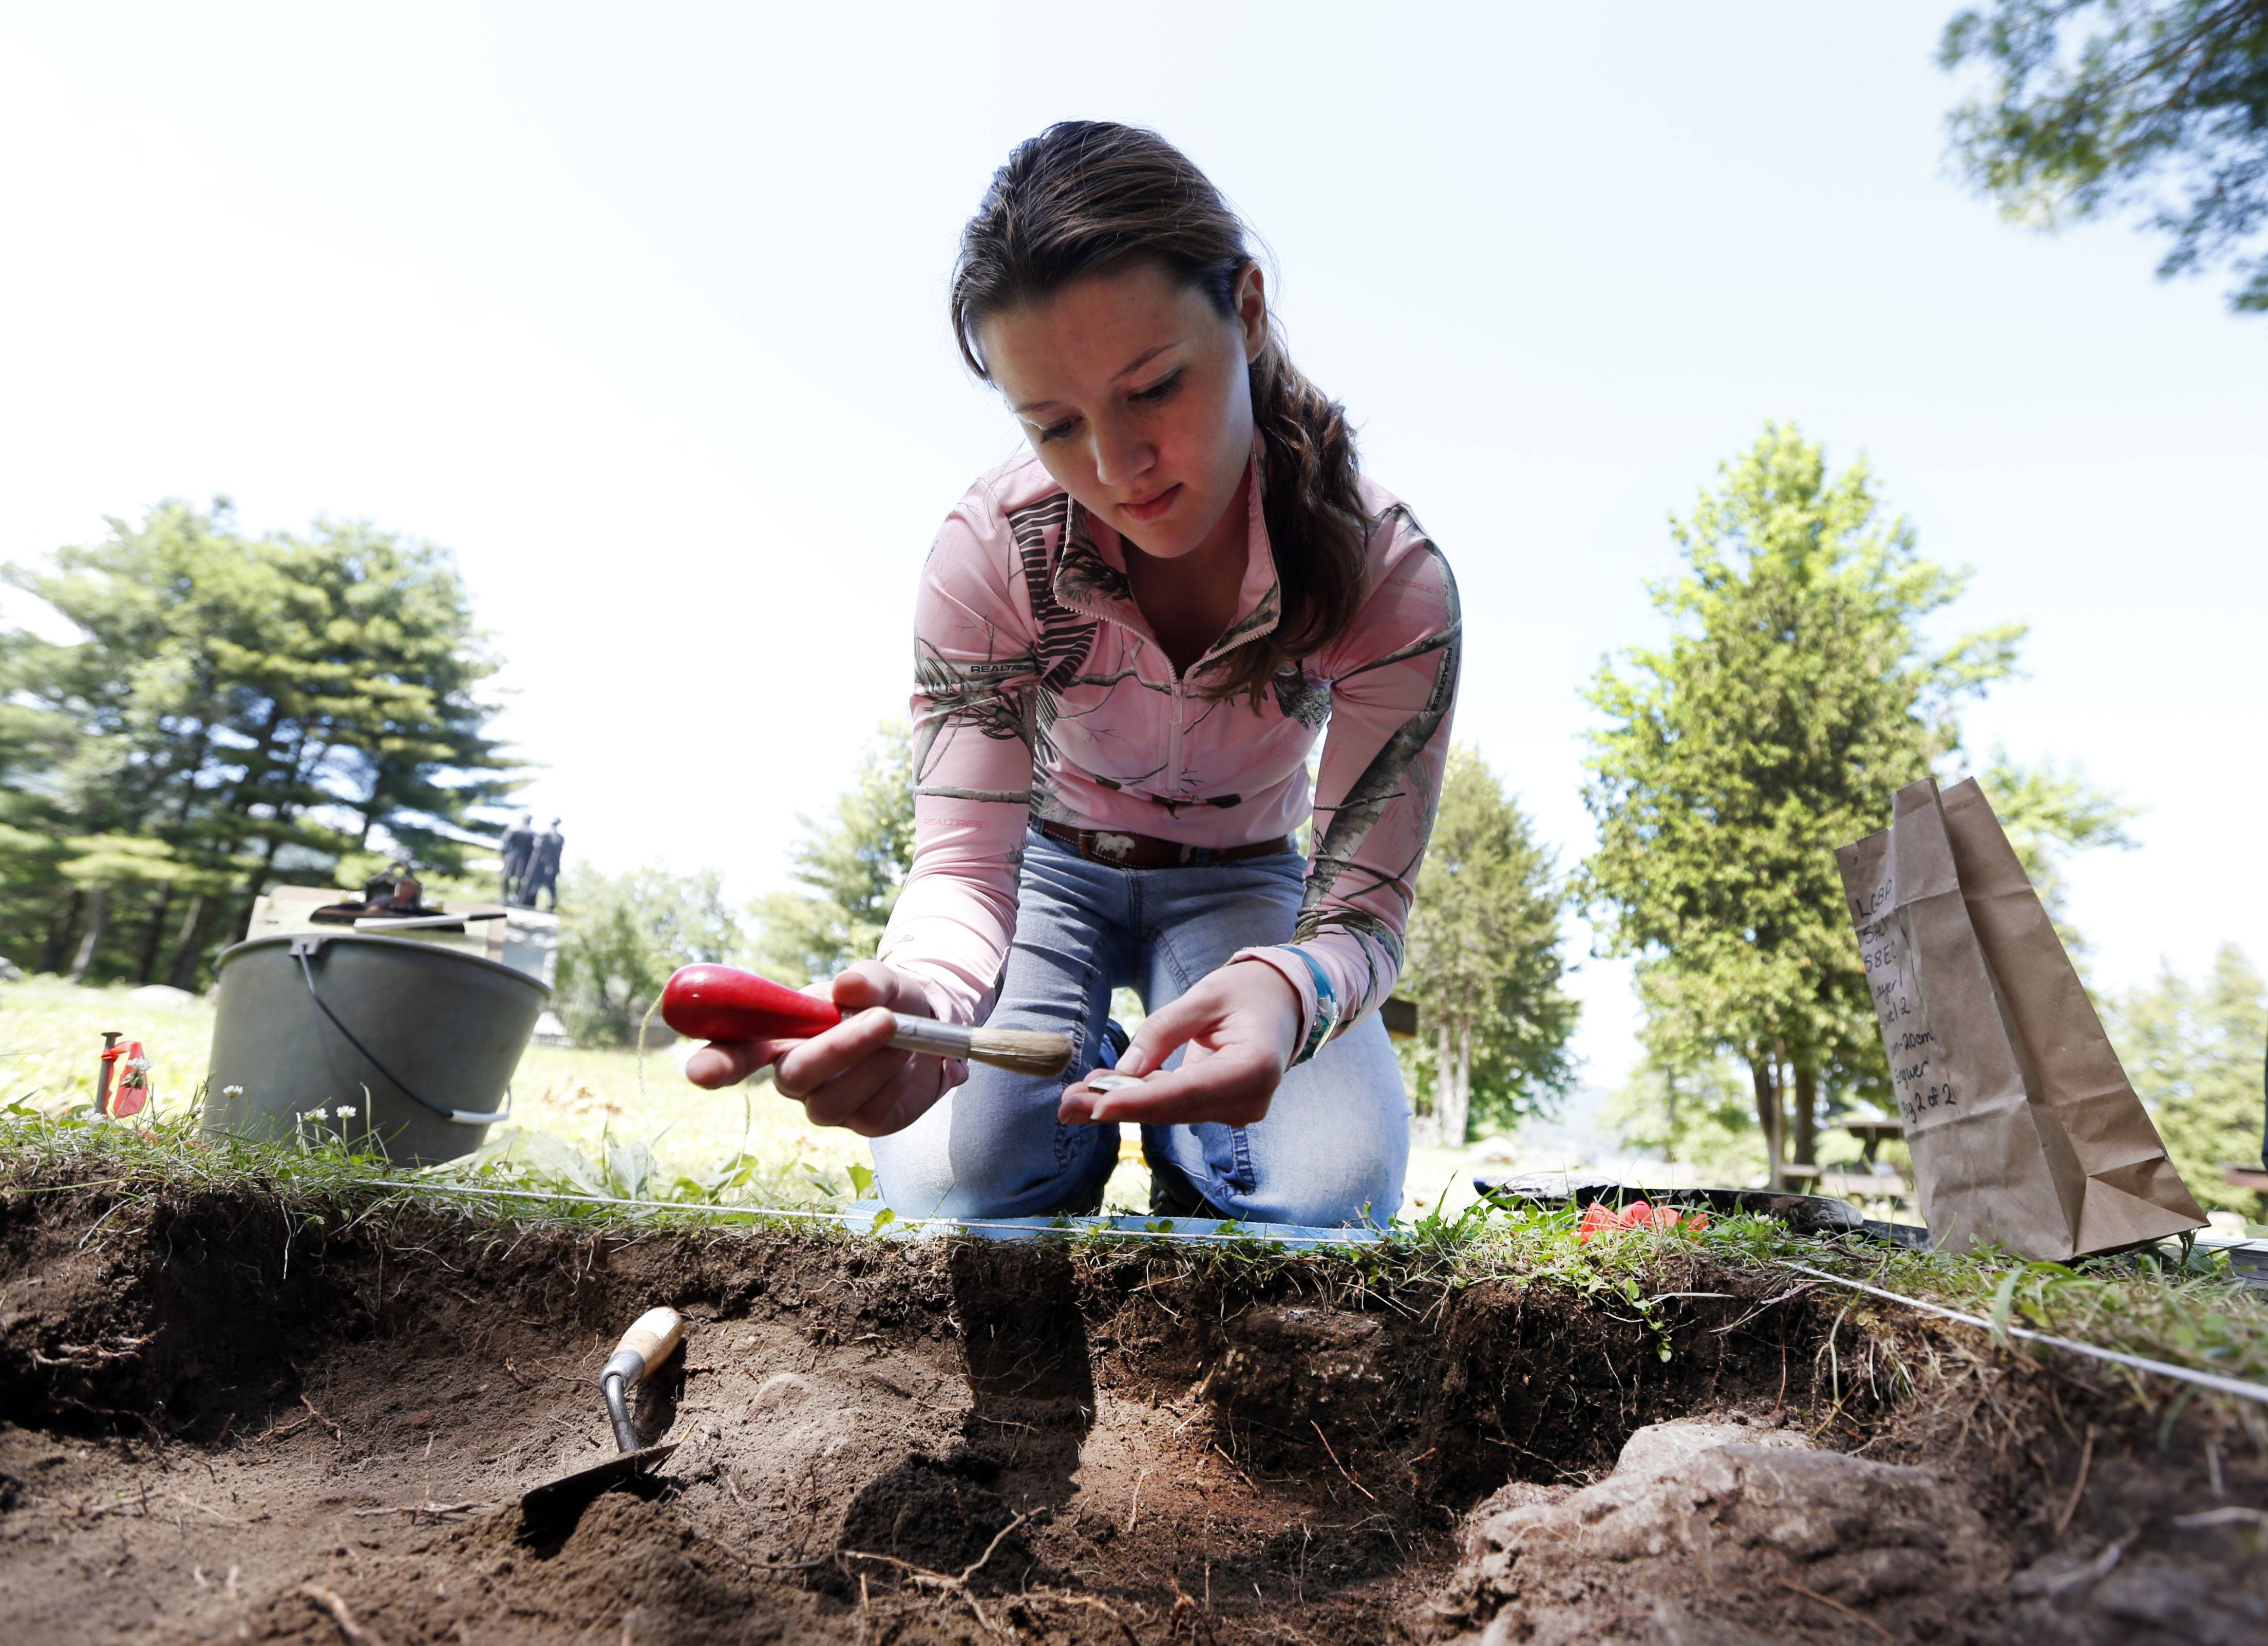 Volunteer Heather Engwer, of Lake George, N.Y., examines an artifact during an archaeological field school dig at Lake George Battlefield Park in Lake George, N.Y.